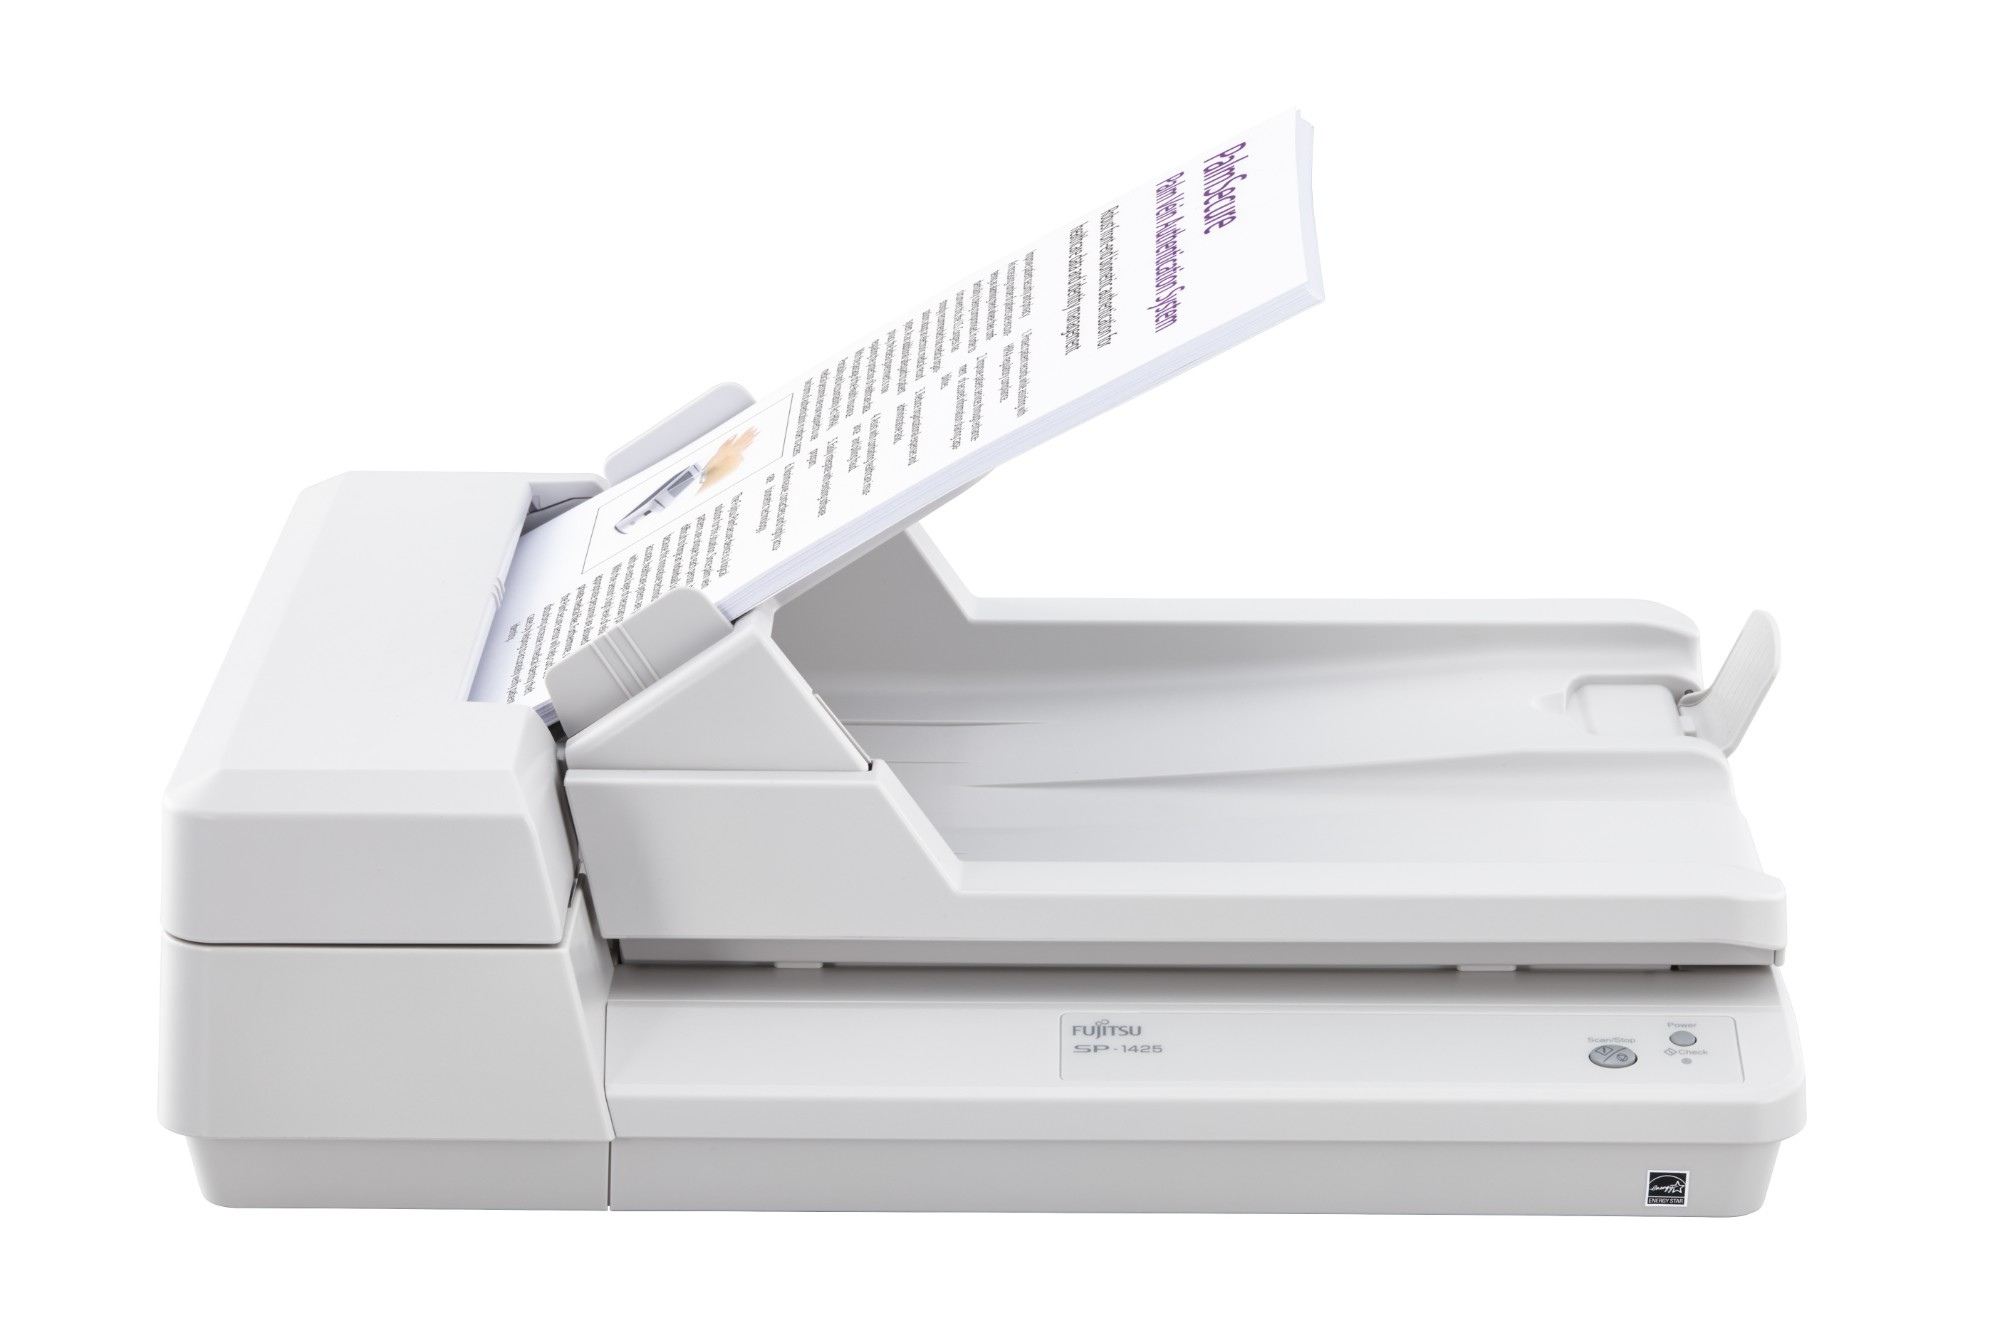 Fujitsu SP-1425 Document Scanner 25ppm / 50ipm duplex A4 desktop document scanner with ADF and Flatb